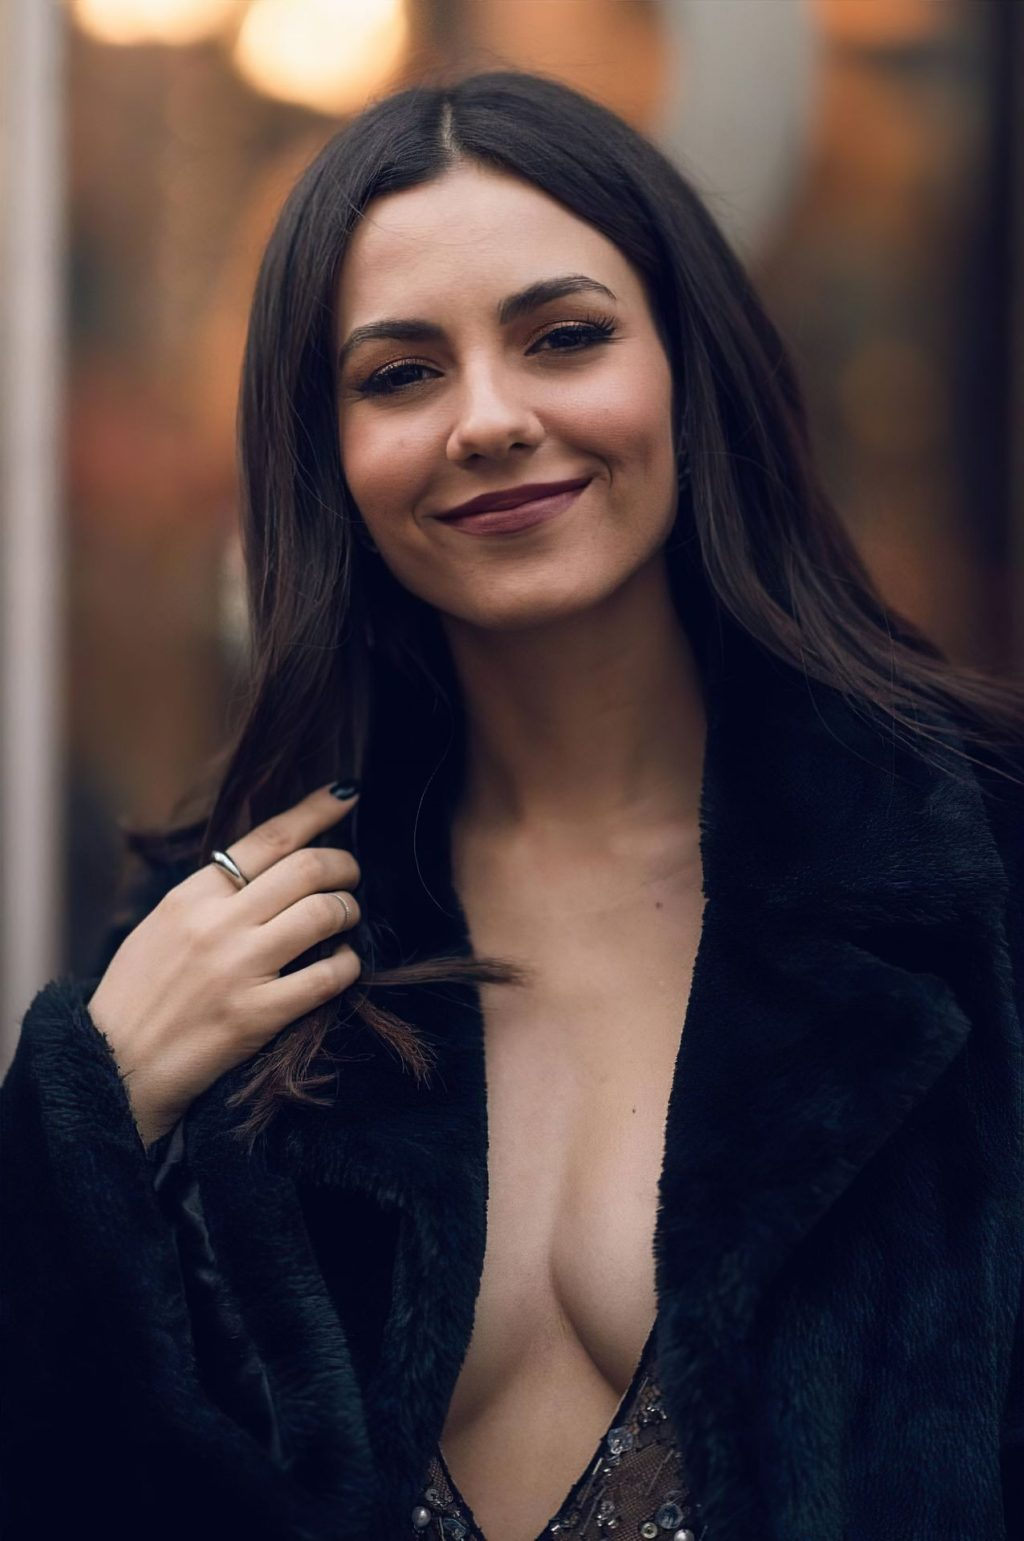 Victoria Justice Shows Her Tits in New York (3 Photos)